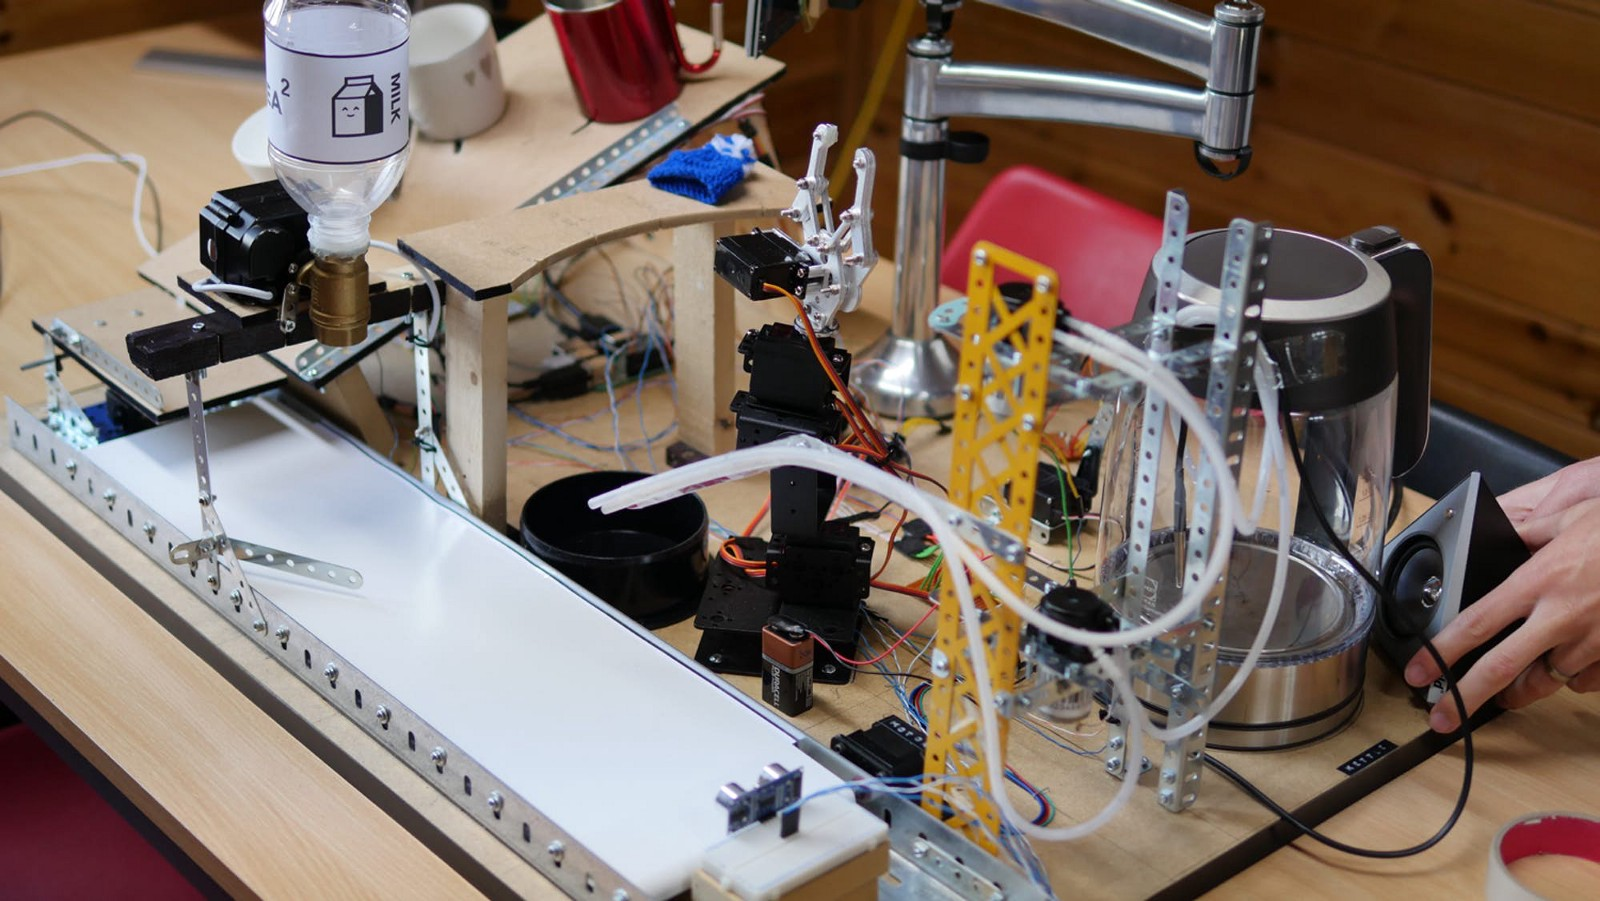 Nokia Brick Controlled Tea Making Robot Channels Doc Brown And Rube Electrical Wiring Goldberg